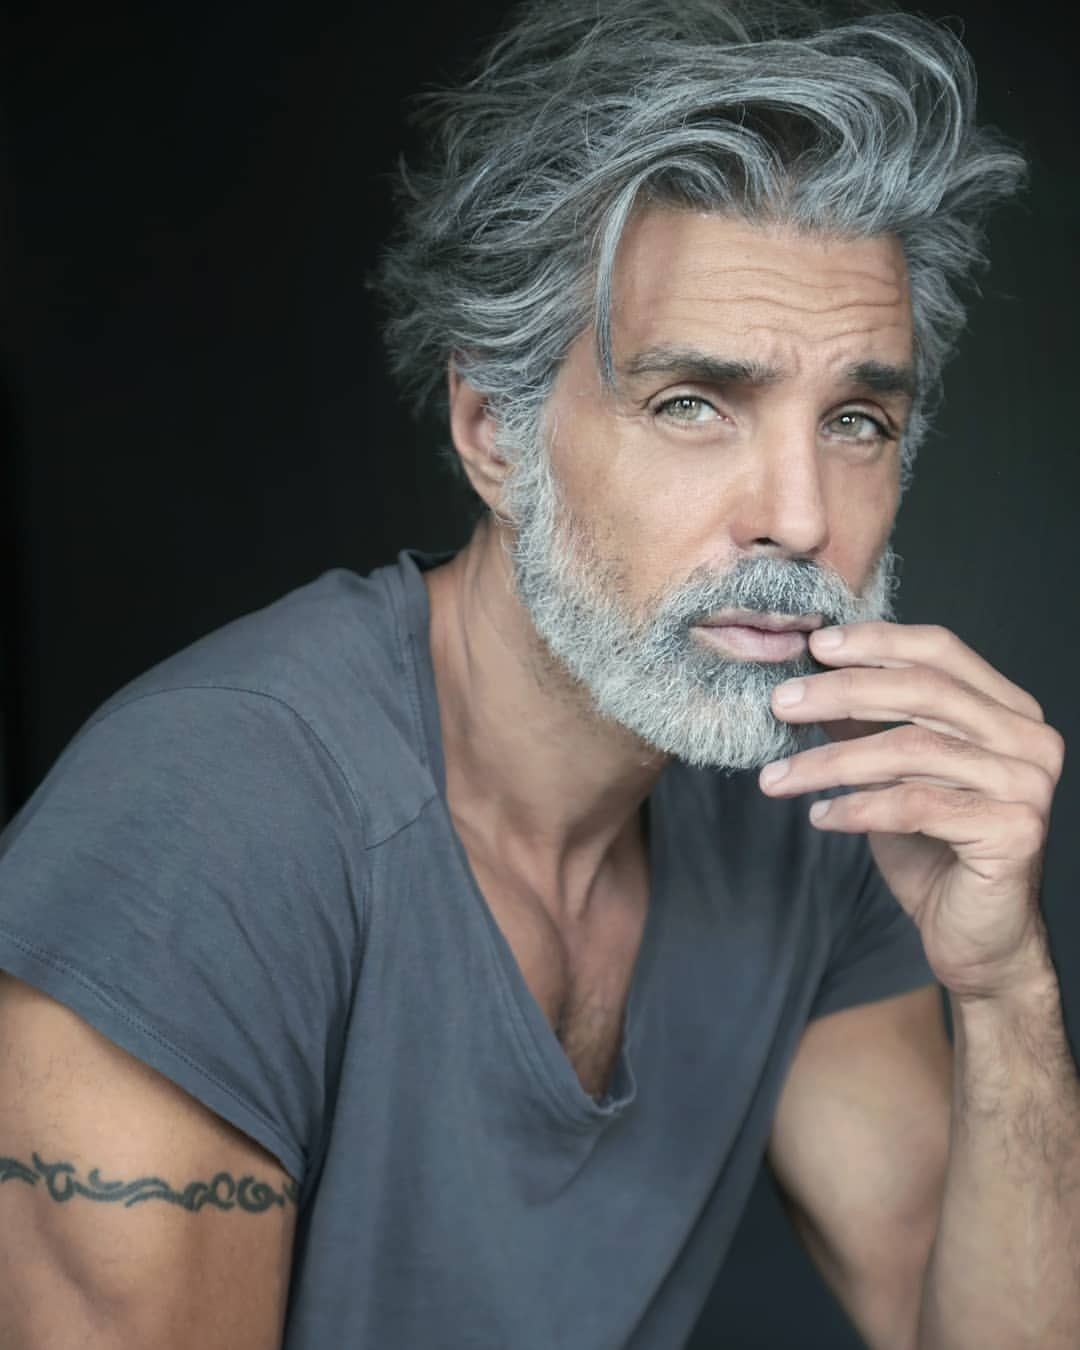 Happy Weekend Everyone Pic By Talented And Amazing Marissa Ph1 Nevsmodels Dmanagement Urbn Grey Hair Men Older Mens Hairstyles Hair And Beard Styles